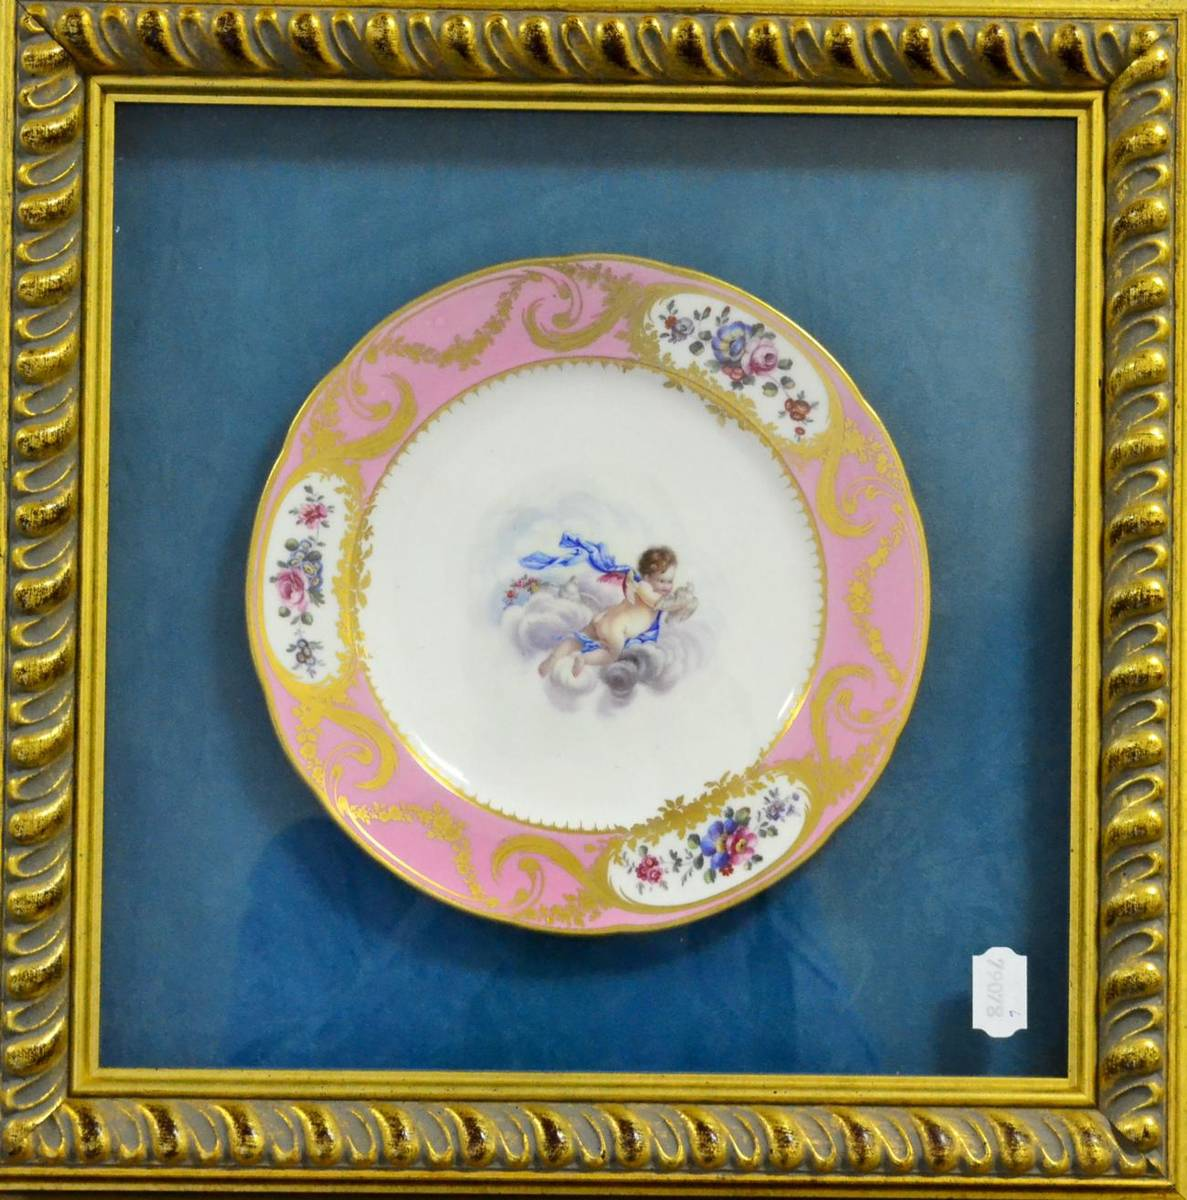 Lot 30 - A Sèvres Style Porcelain Plate, in 18th century style, painted with a cherub amongst clouds...